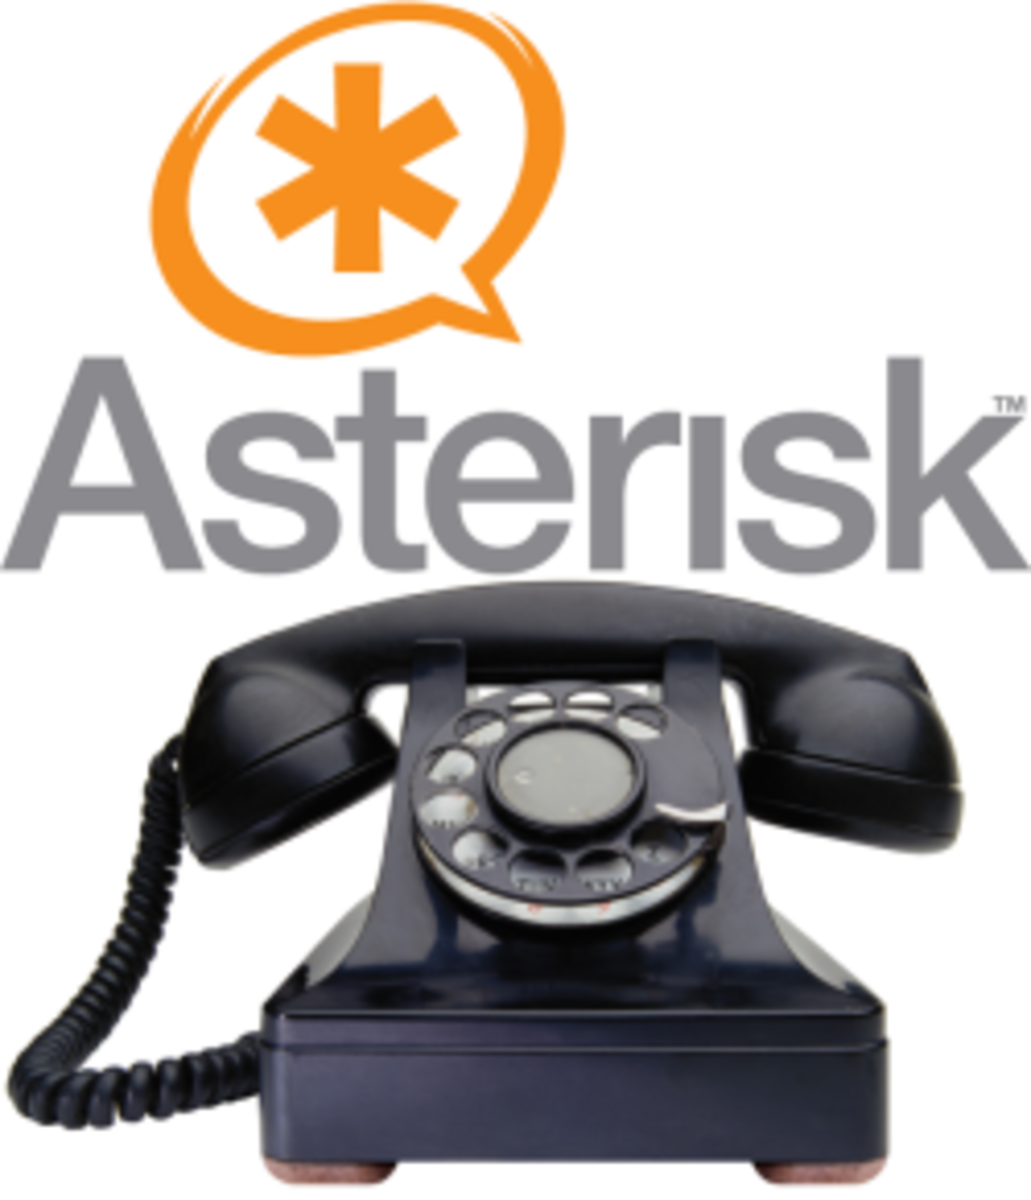 how to install asterisk on ubuntu